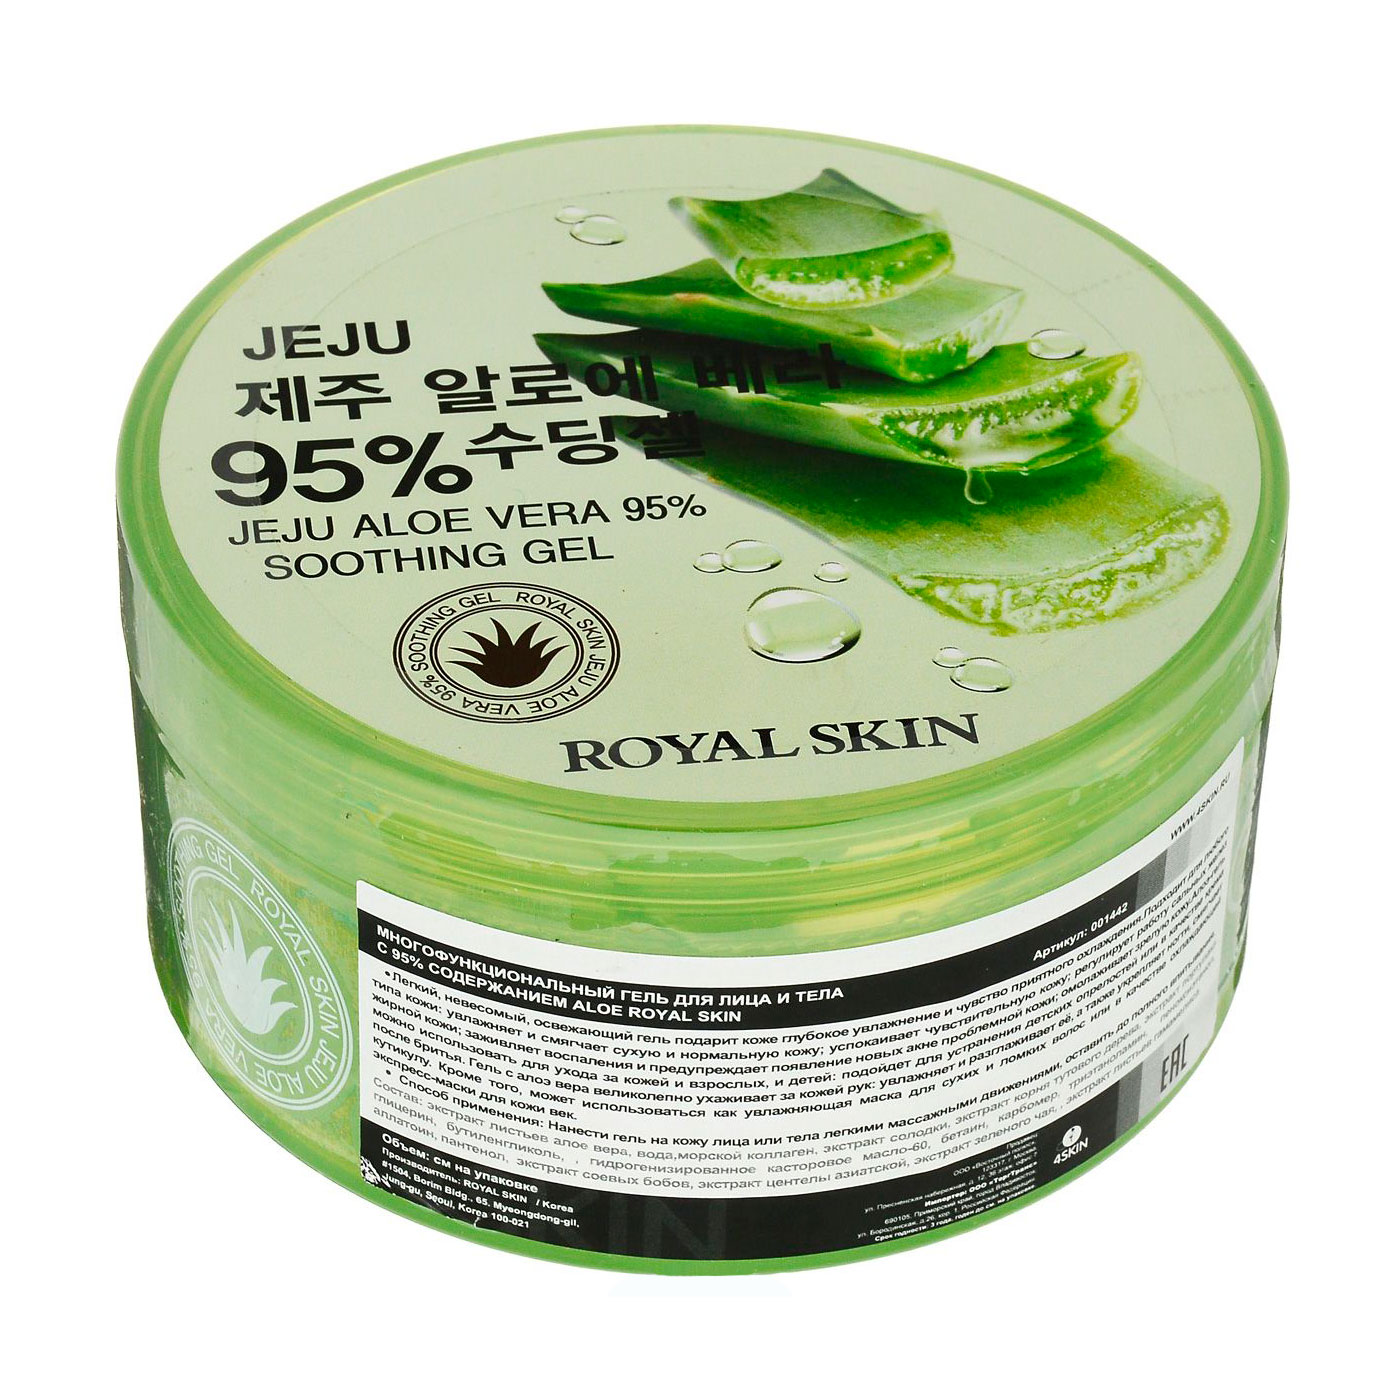 ���� ��� ���� � ���� Royal Skin 300 �� � 95% ����������� Aloe